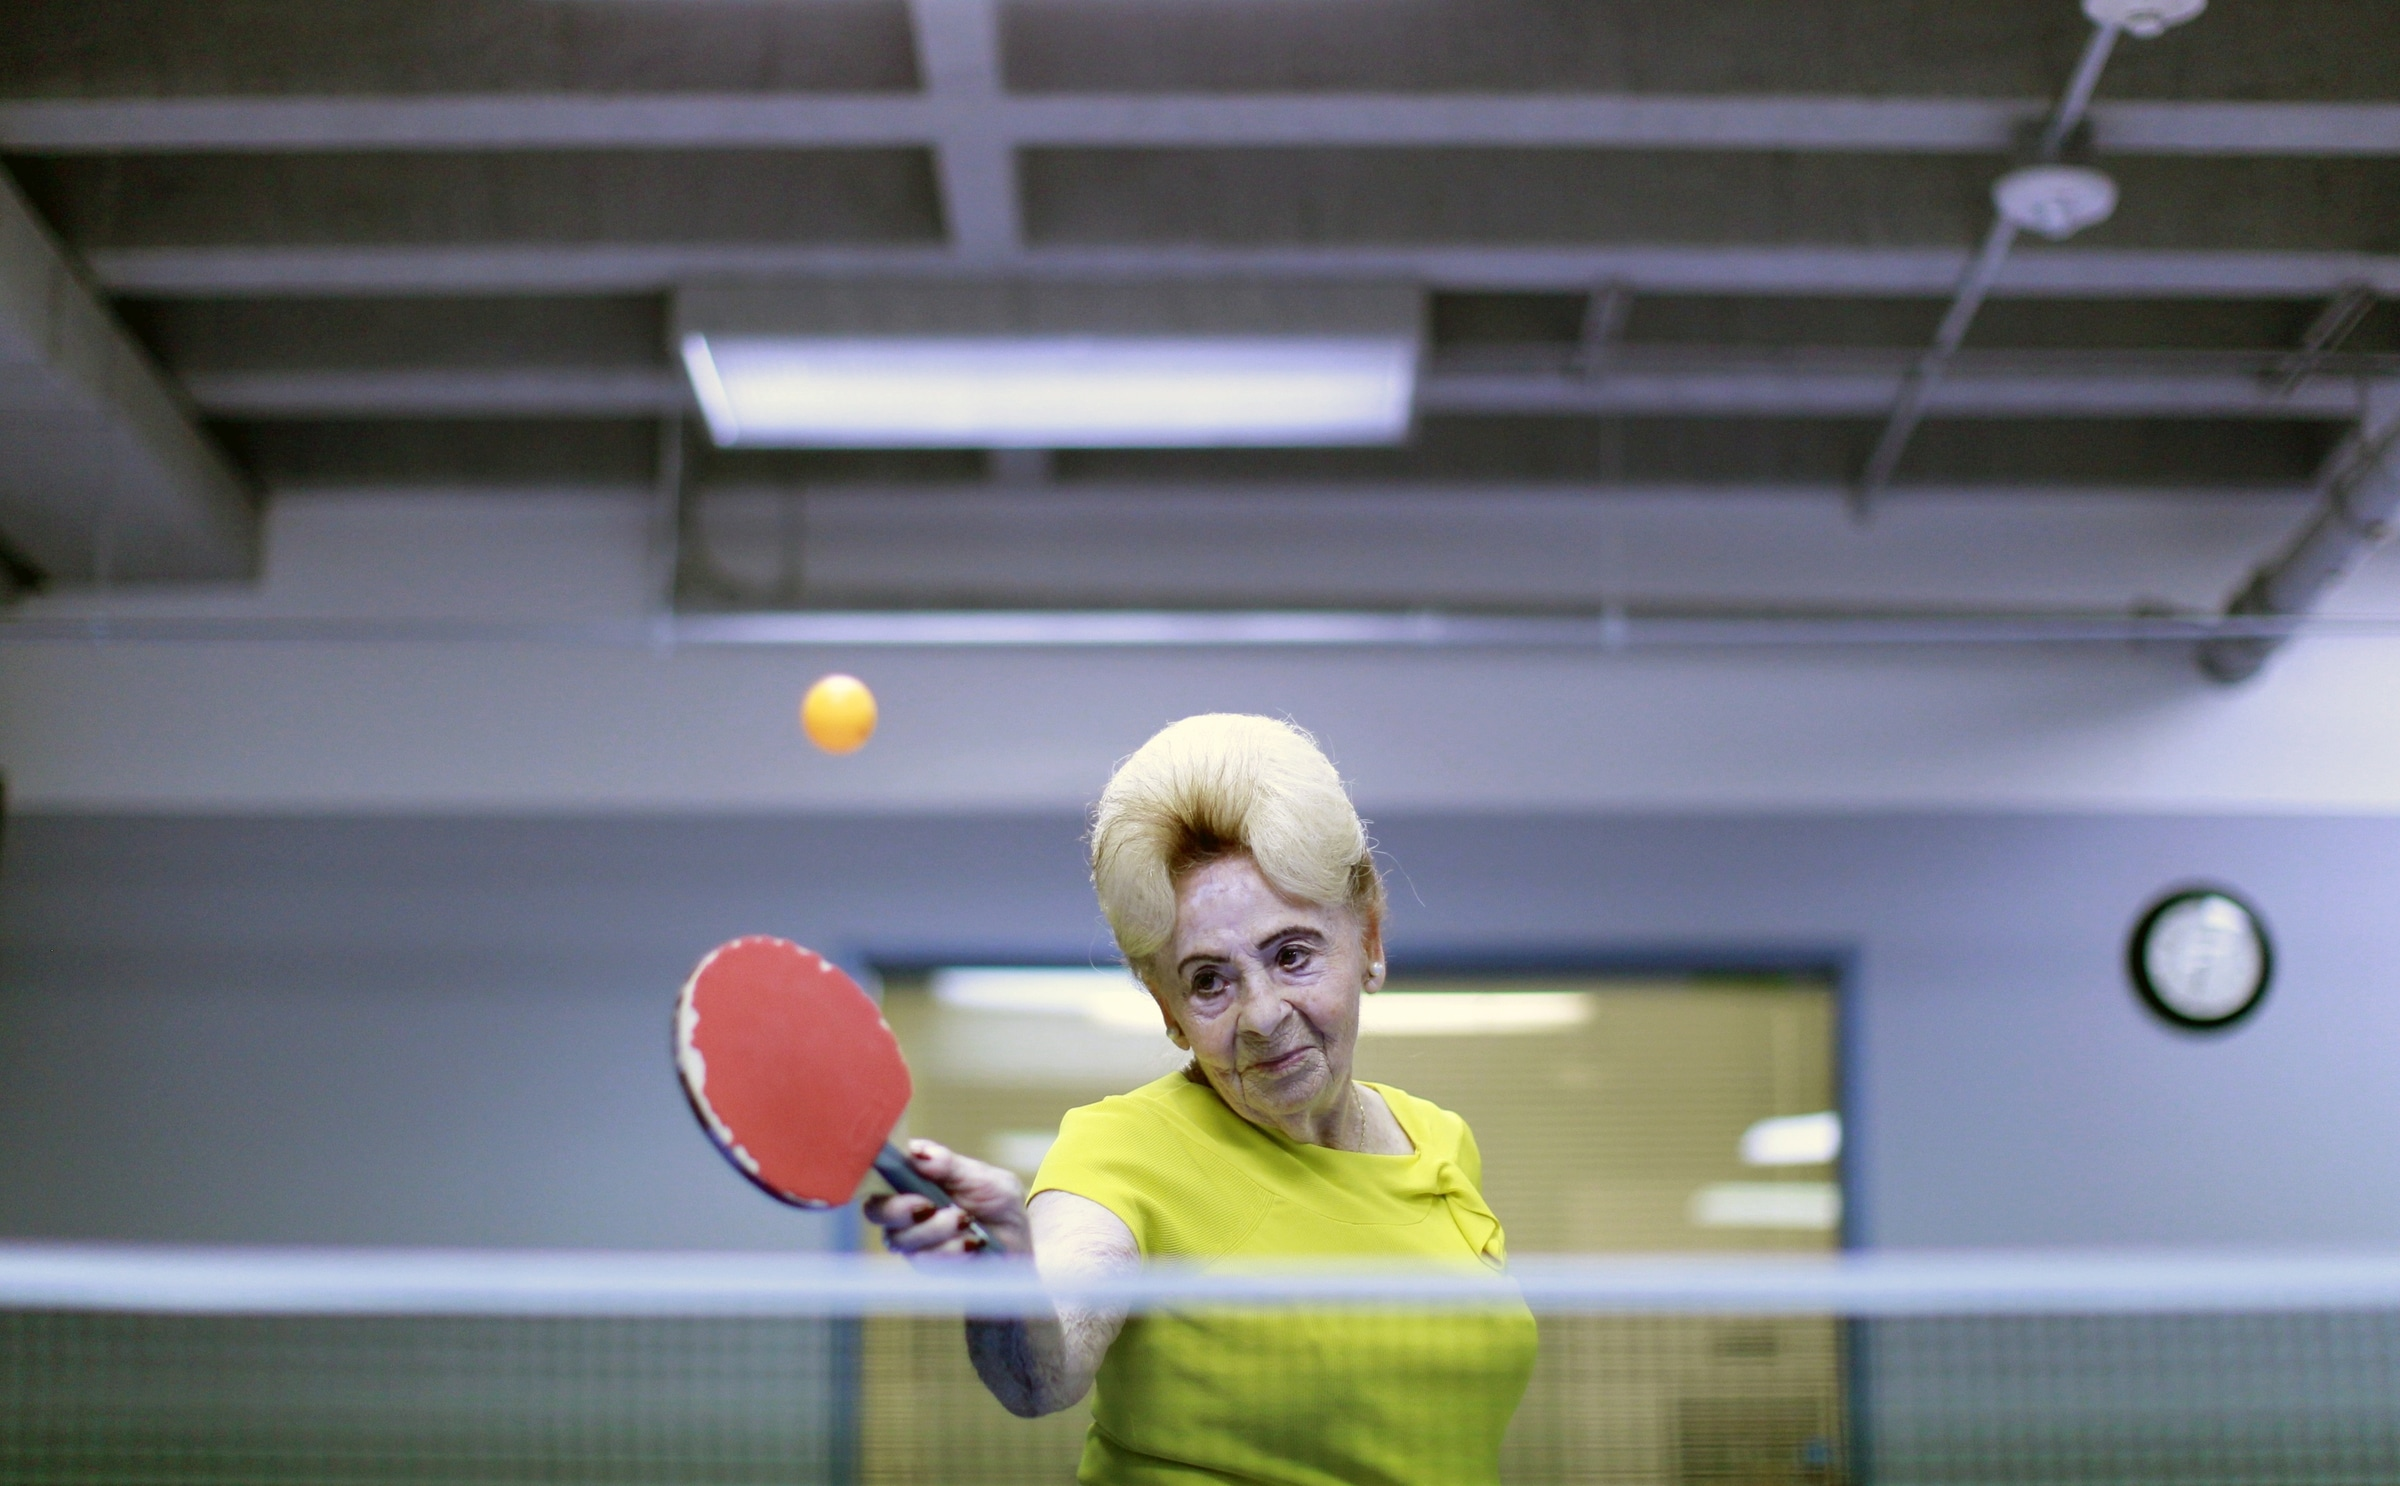 Lucy Nicholson (American/British, born England). Alzheimer's Ping Pong Therapy, Los Angeles, CA, 2011, printed 2016. Inkjet print, 10 5/8 x 16 3/8 in. (26.9 x 41.5 cm). Courtesy of Lucy Nicholson/Reuters